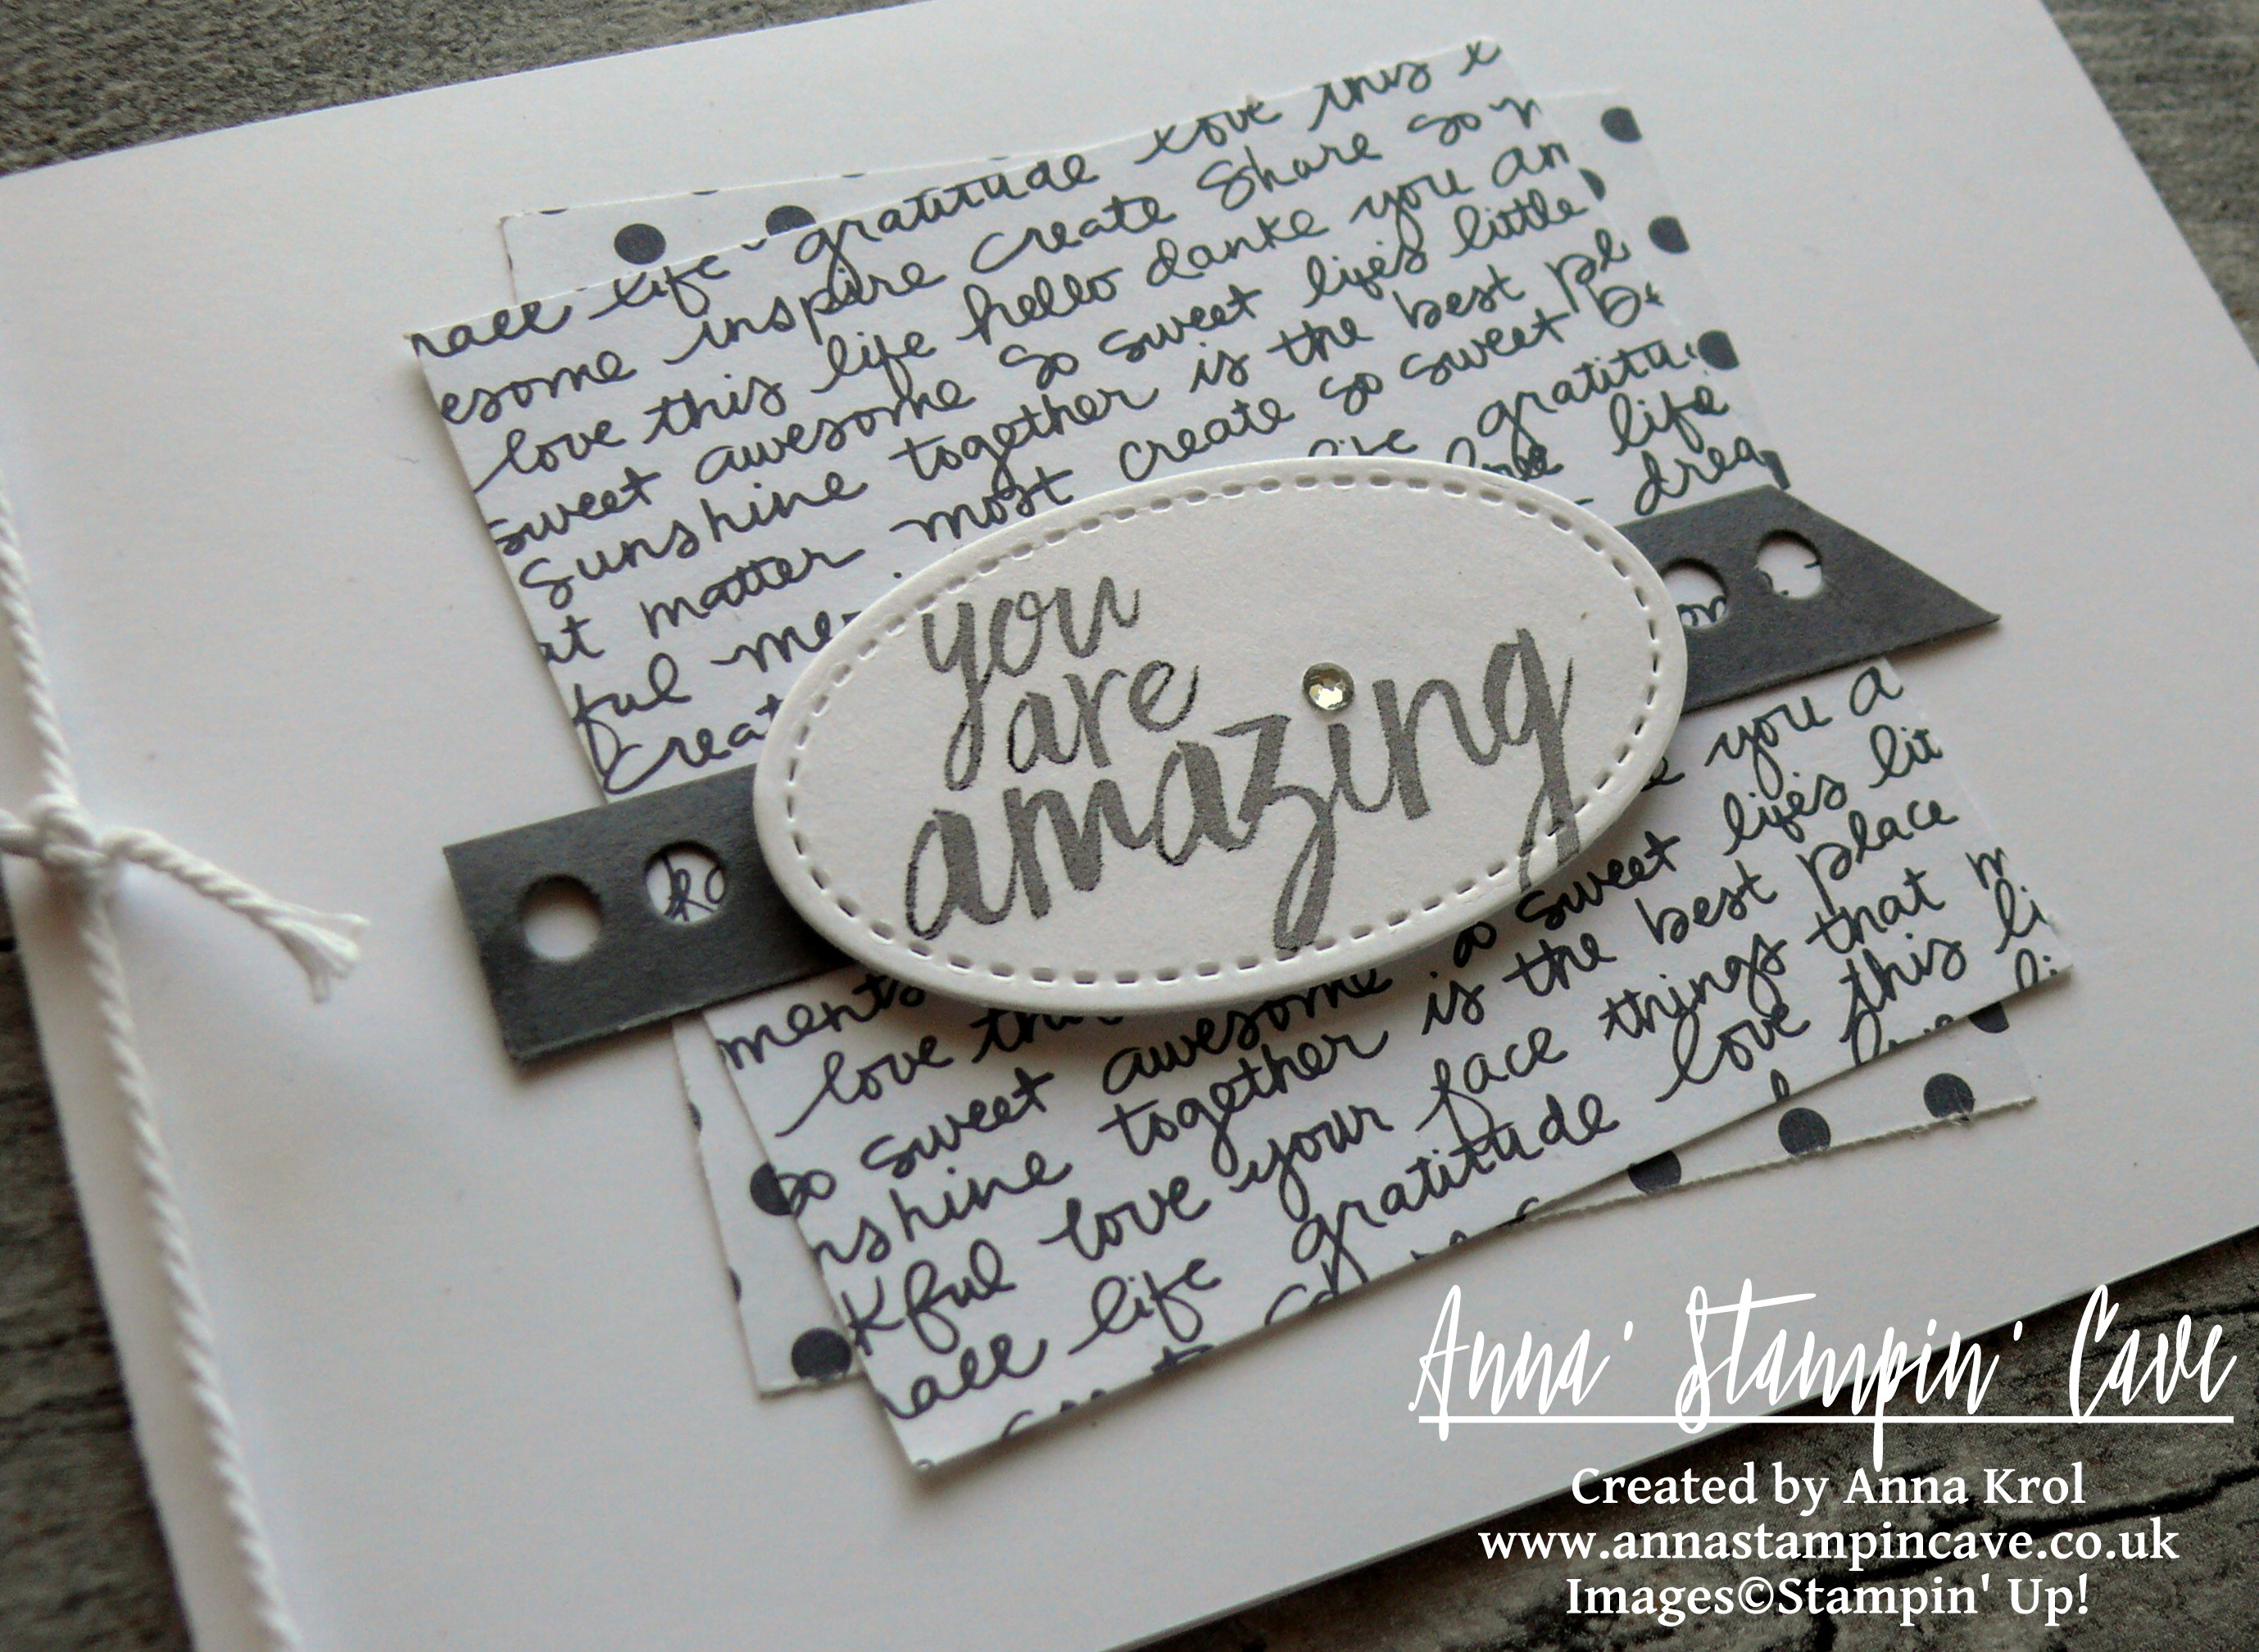 Anna' Stampin' Cave - All Things Thanks Stamp Set by Stampin' Up! Monochromatic CAS Card You Are Amazing.JPG